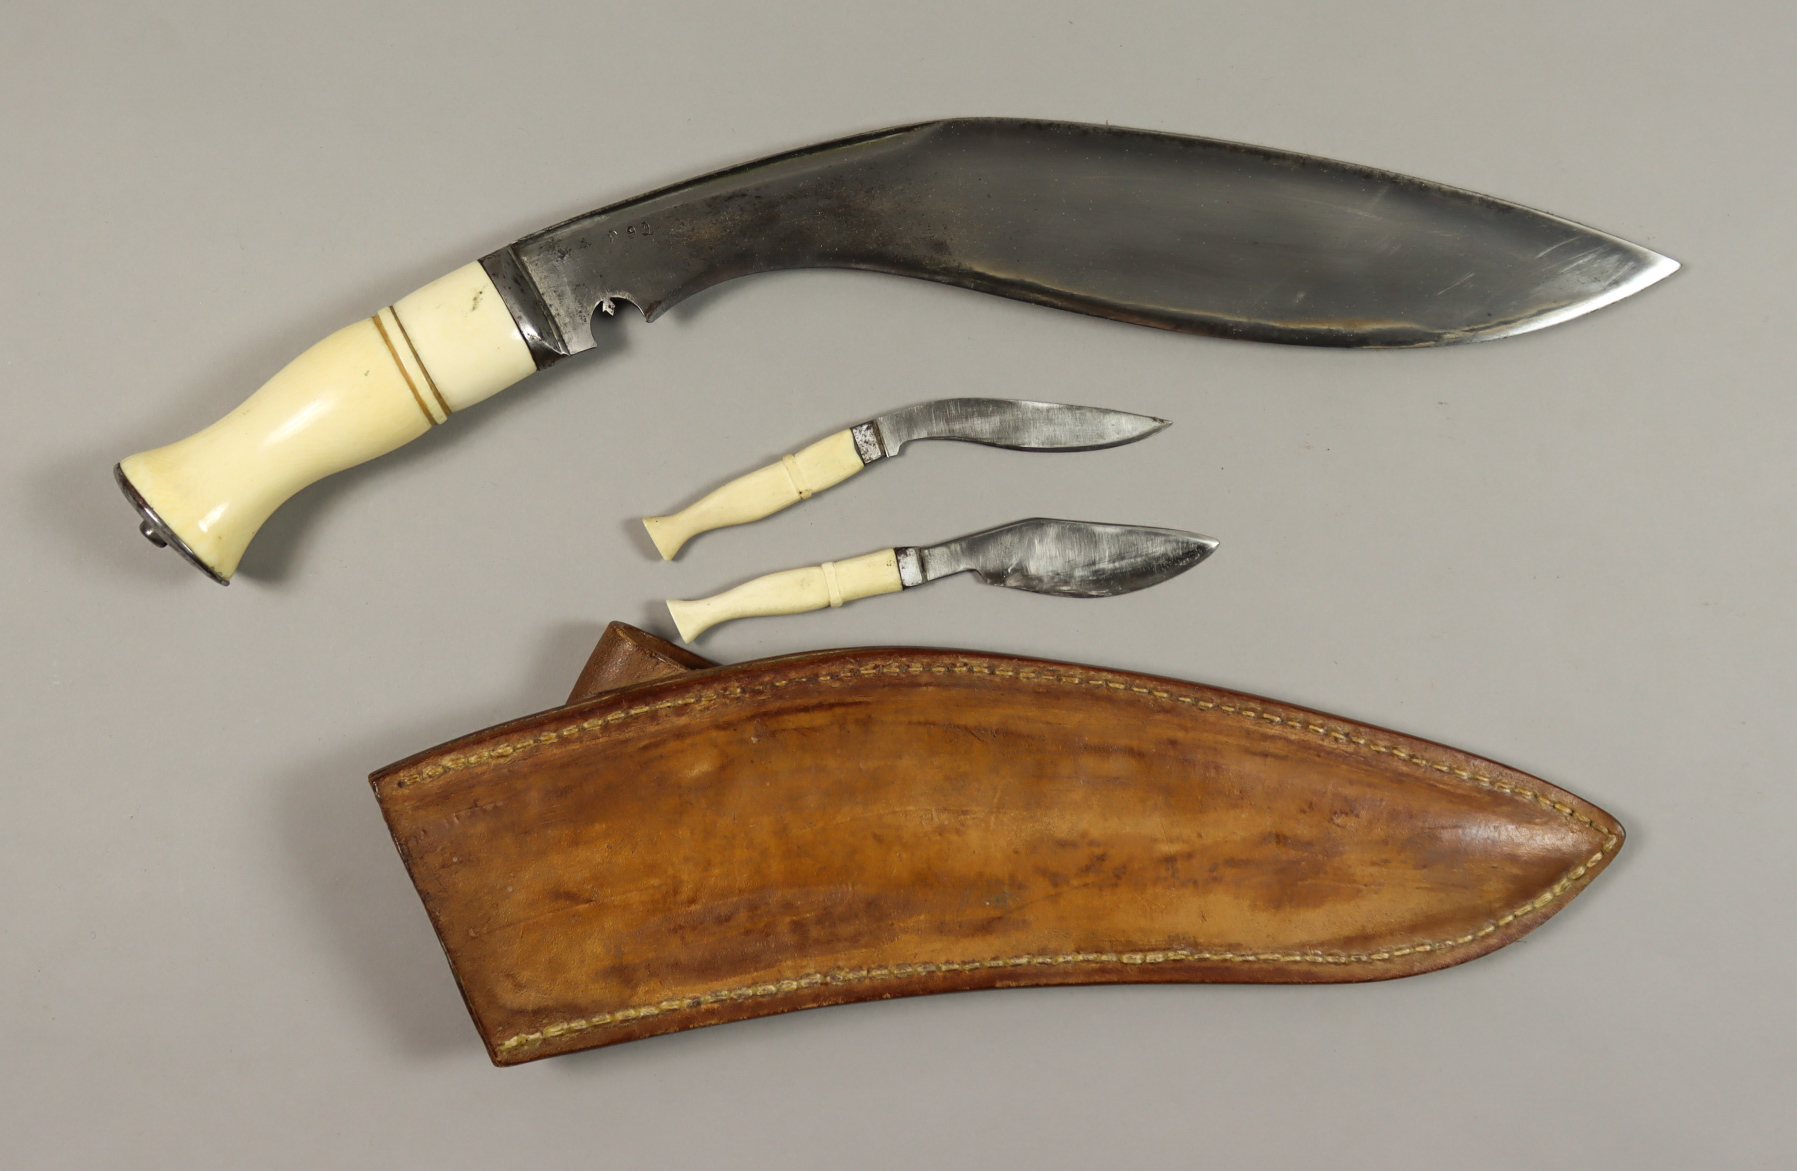 A Good 20th Century Broad Leaf Kukri, No. 899, in substantial leather scabbard, fitted with bone